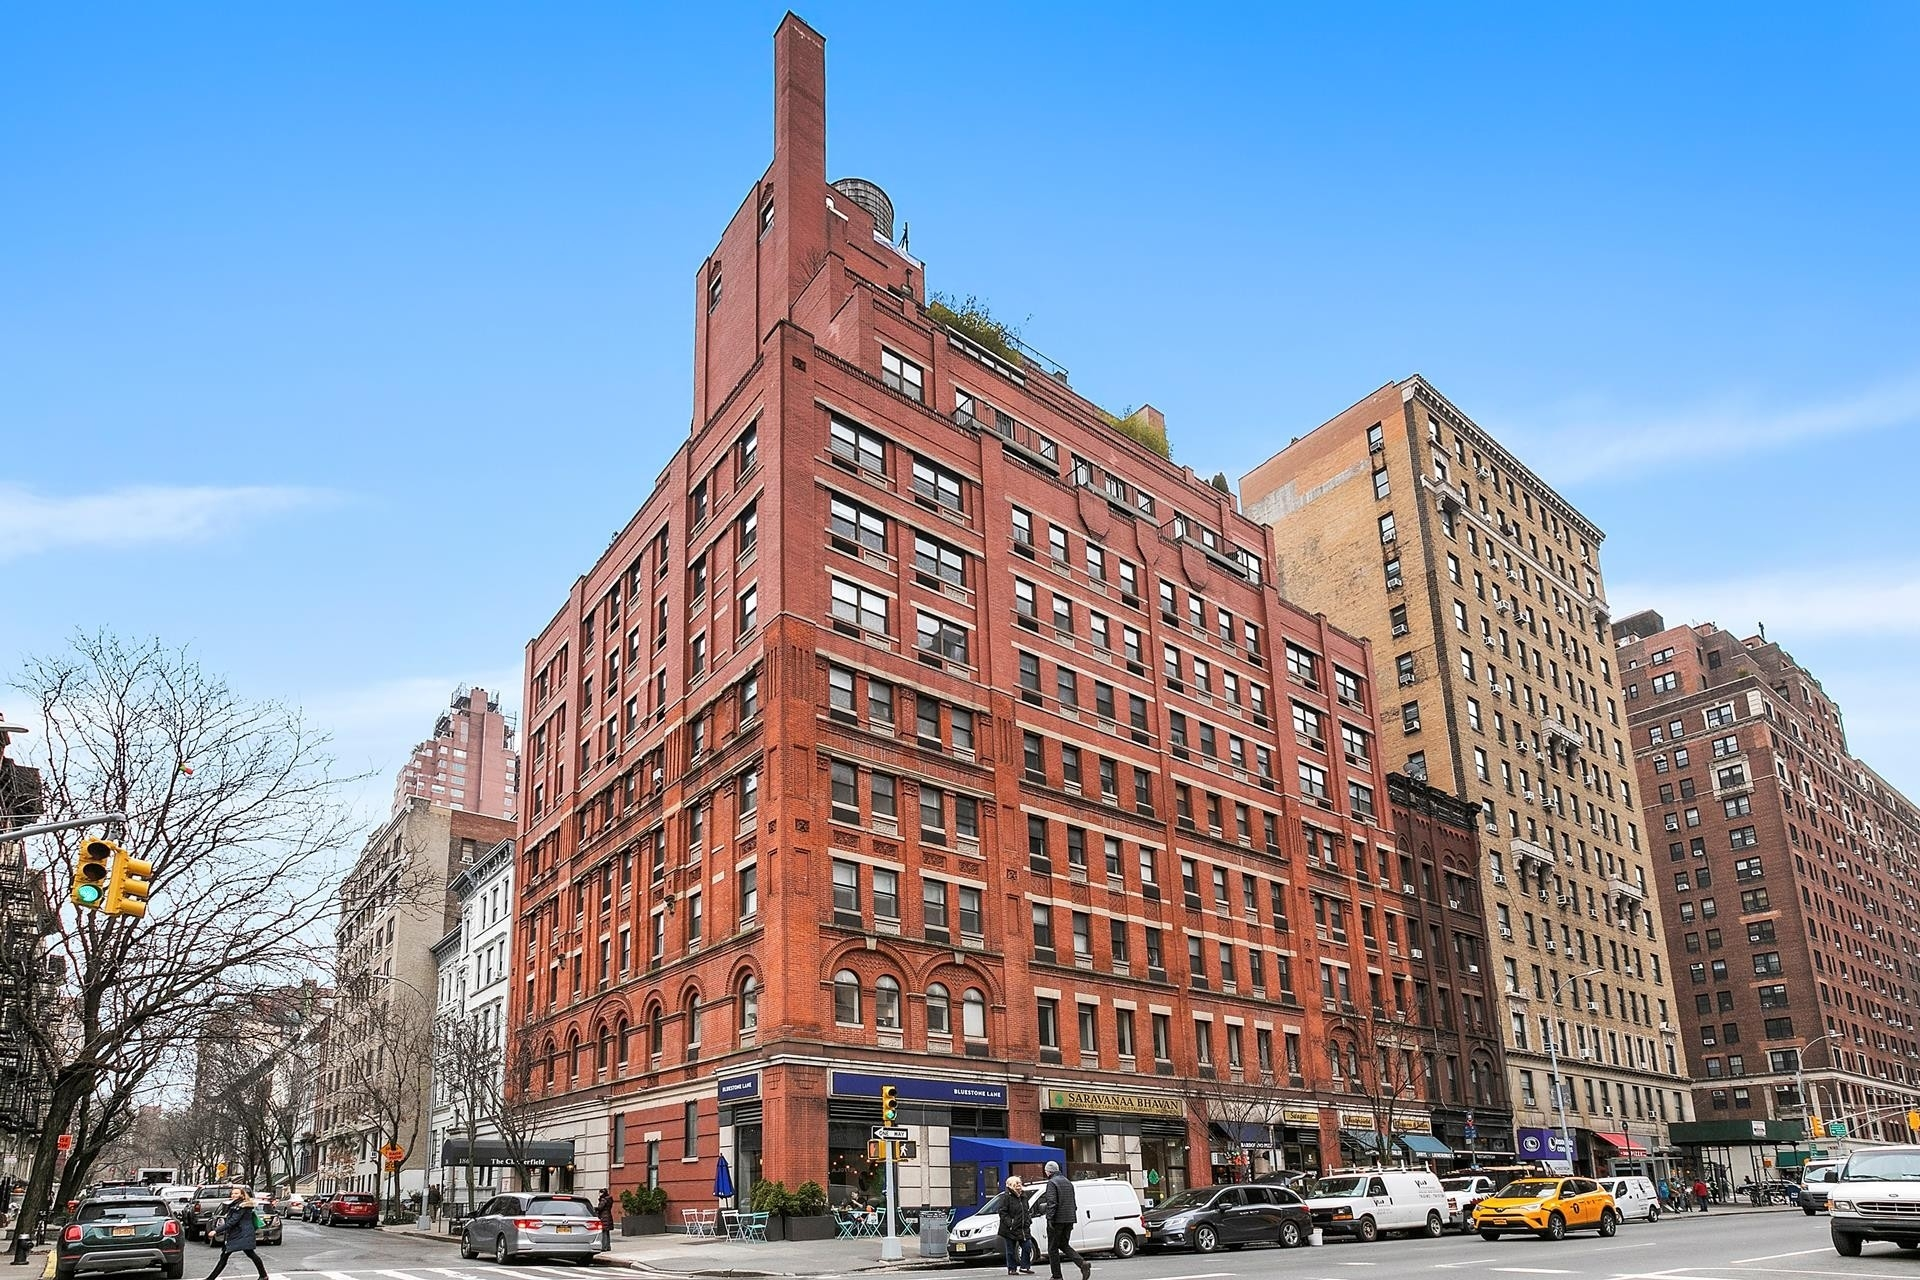 1. building at 186 West 80th St, Upper Manhattan, New York, NY